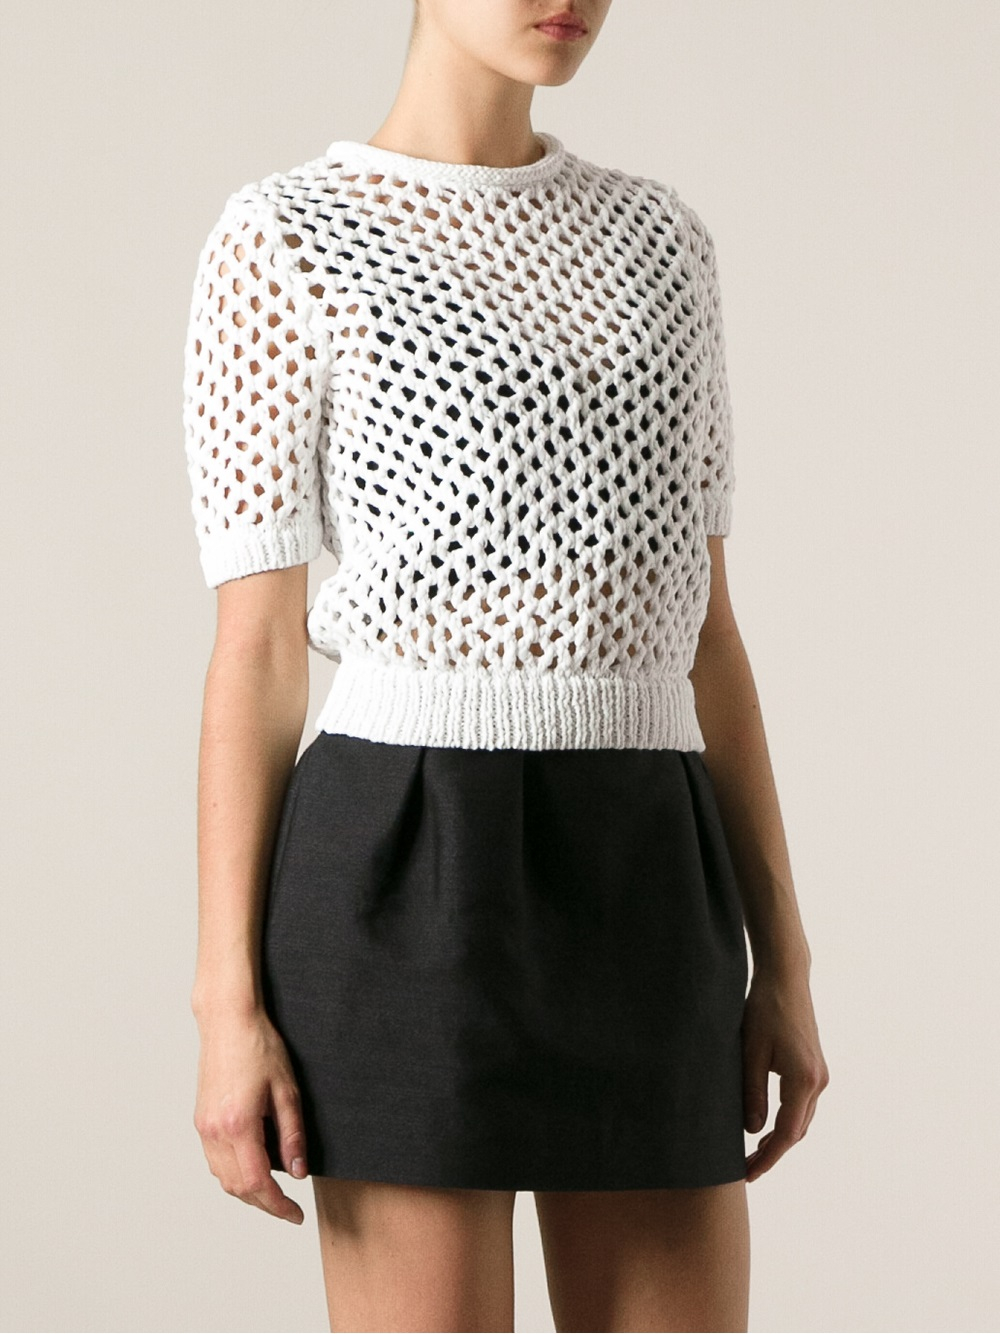 Alexander wang Short Sleeve Open Knit Sweater in White | Lyst